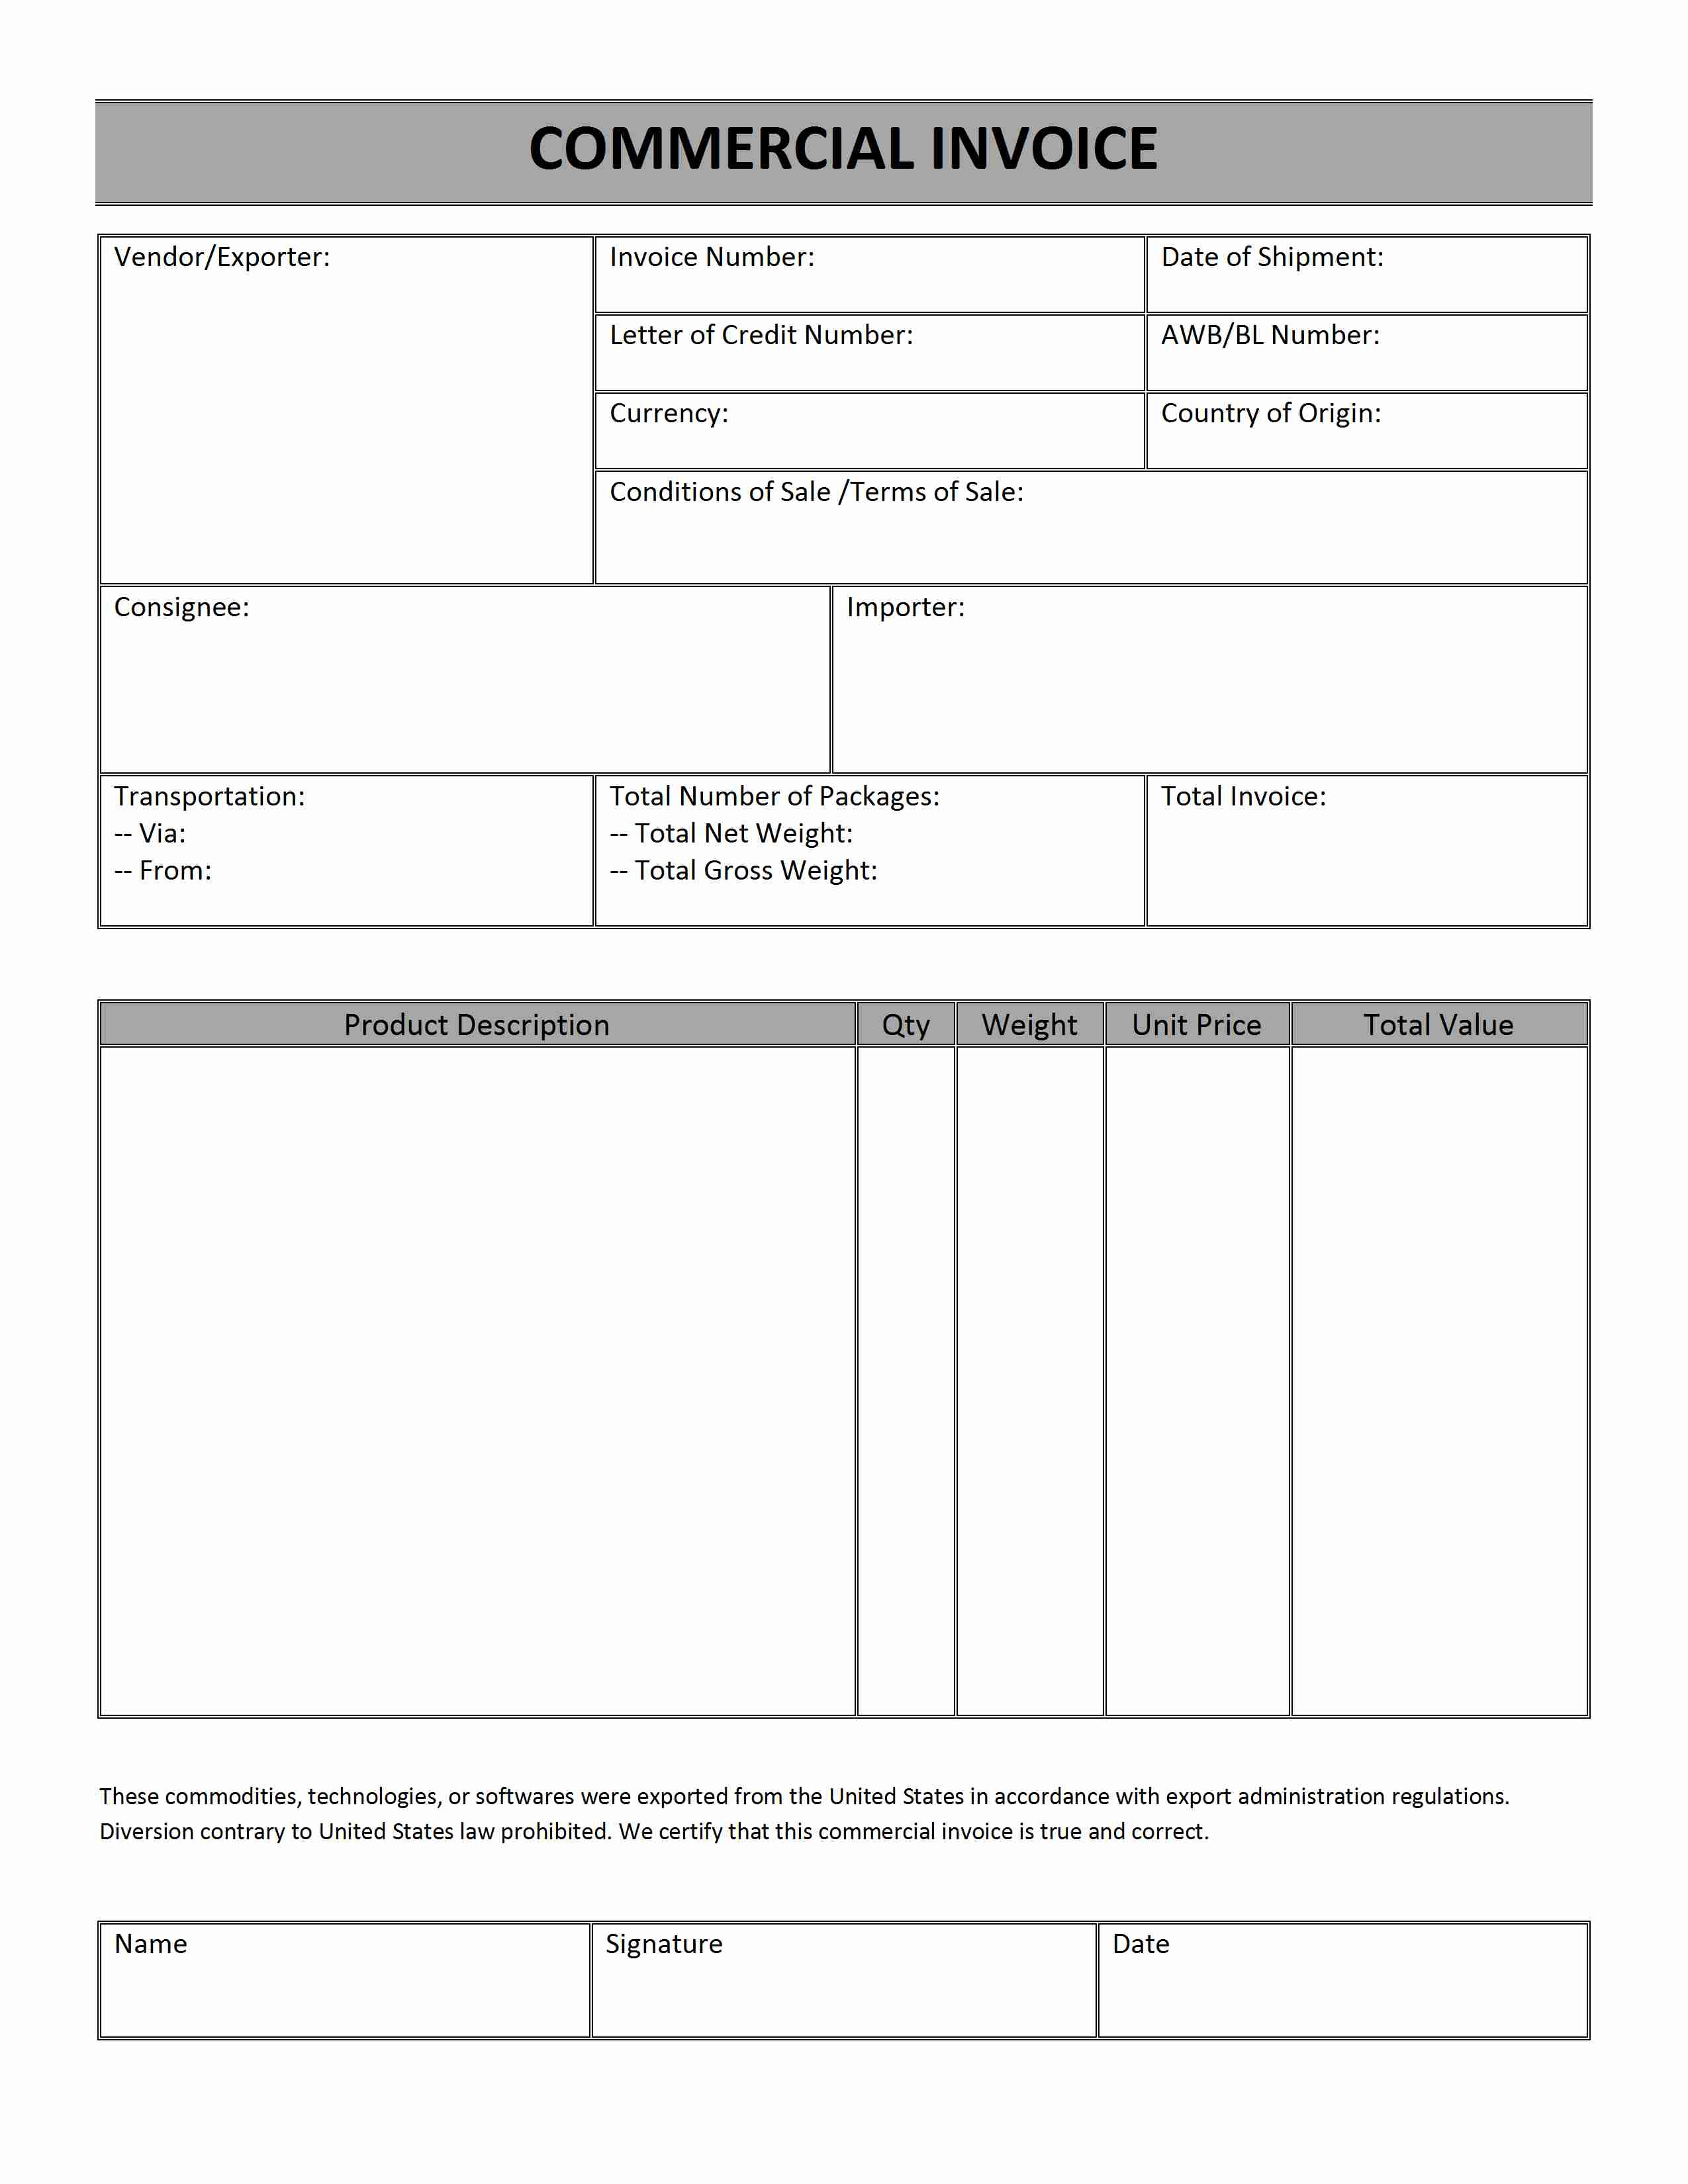 Ultrablogus  Pleasing Printable Sales Invoice Simple Invoice Form Free Invoice  With Extraordinary Printable Receipt Free  Free Printable Raffle Tickets  Receipt   Printable With Amusing Hours Invoice Also Invoice For Service In Addition Invoice T And How To Invoice A Client As Well As How To Write An Invoice Template Additionally Video Production Invoice Template From Happytomco With Ultrablogus  Extraordinary Printable Sales Invoice Simple Invoice Form Free Invoice  With Amusing Printable Receipt Free  Free Printable Raffle Tickets  Receipt   Printable And Pleasing Hours Invoice Also Invoice For Service In Addition Invoice T From Happytomco